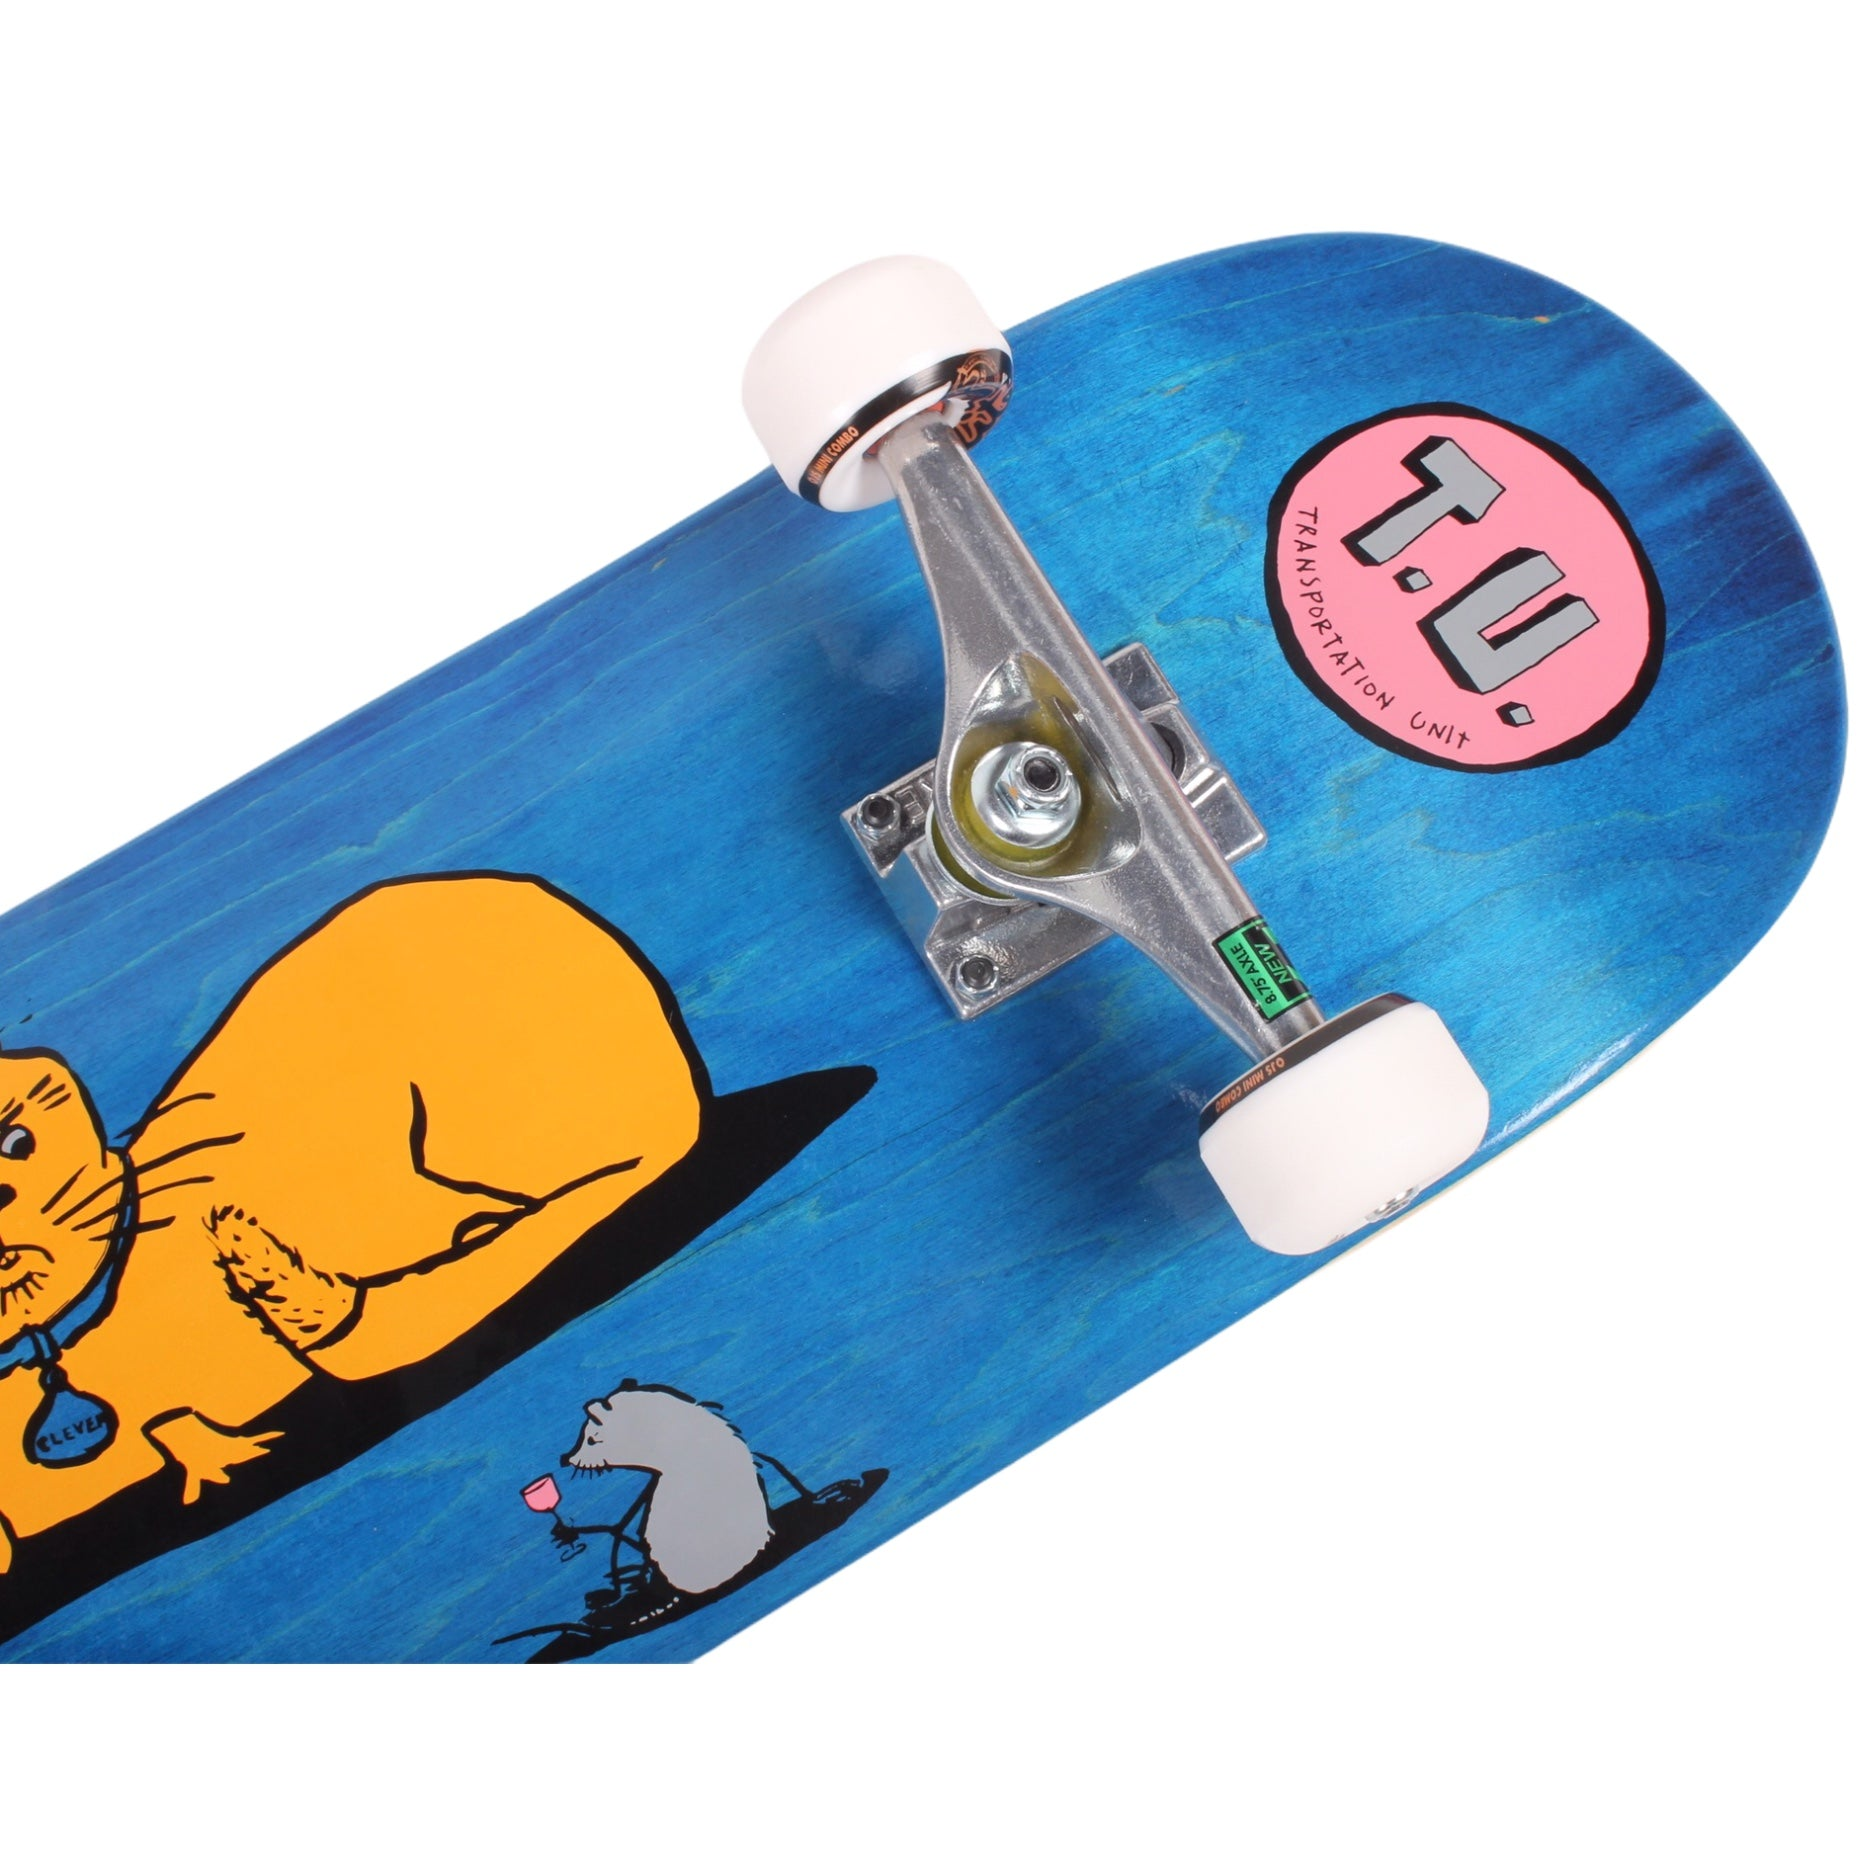 Transportation Unit Complete Skateboard Cat And Mouse 8.8